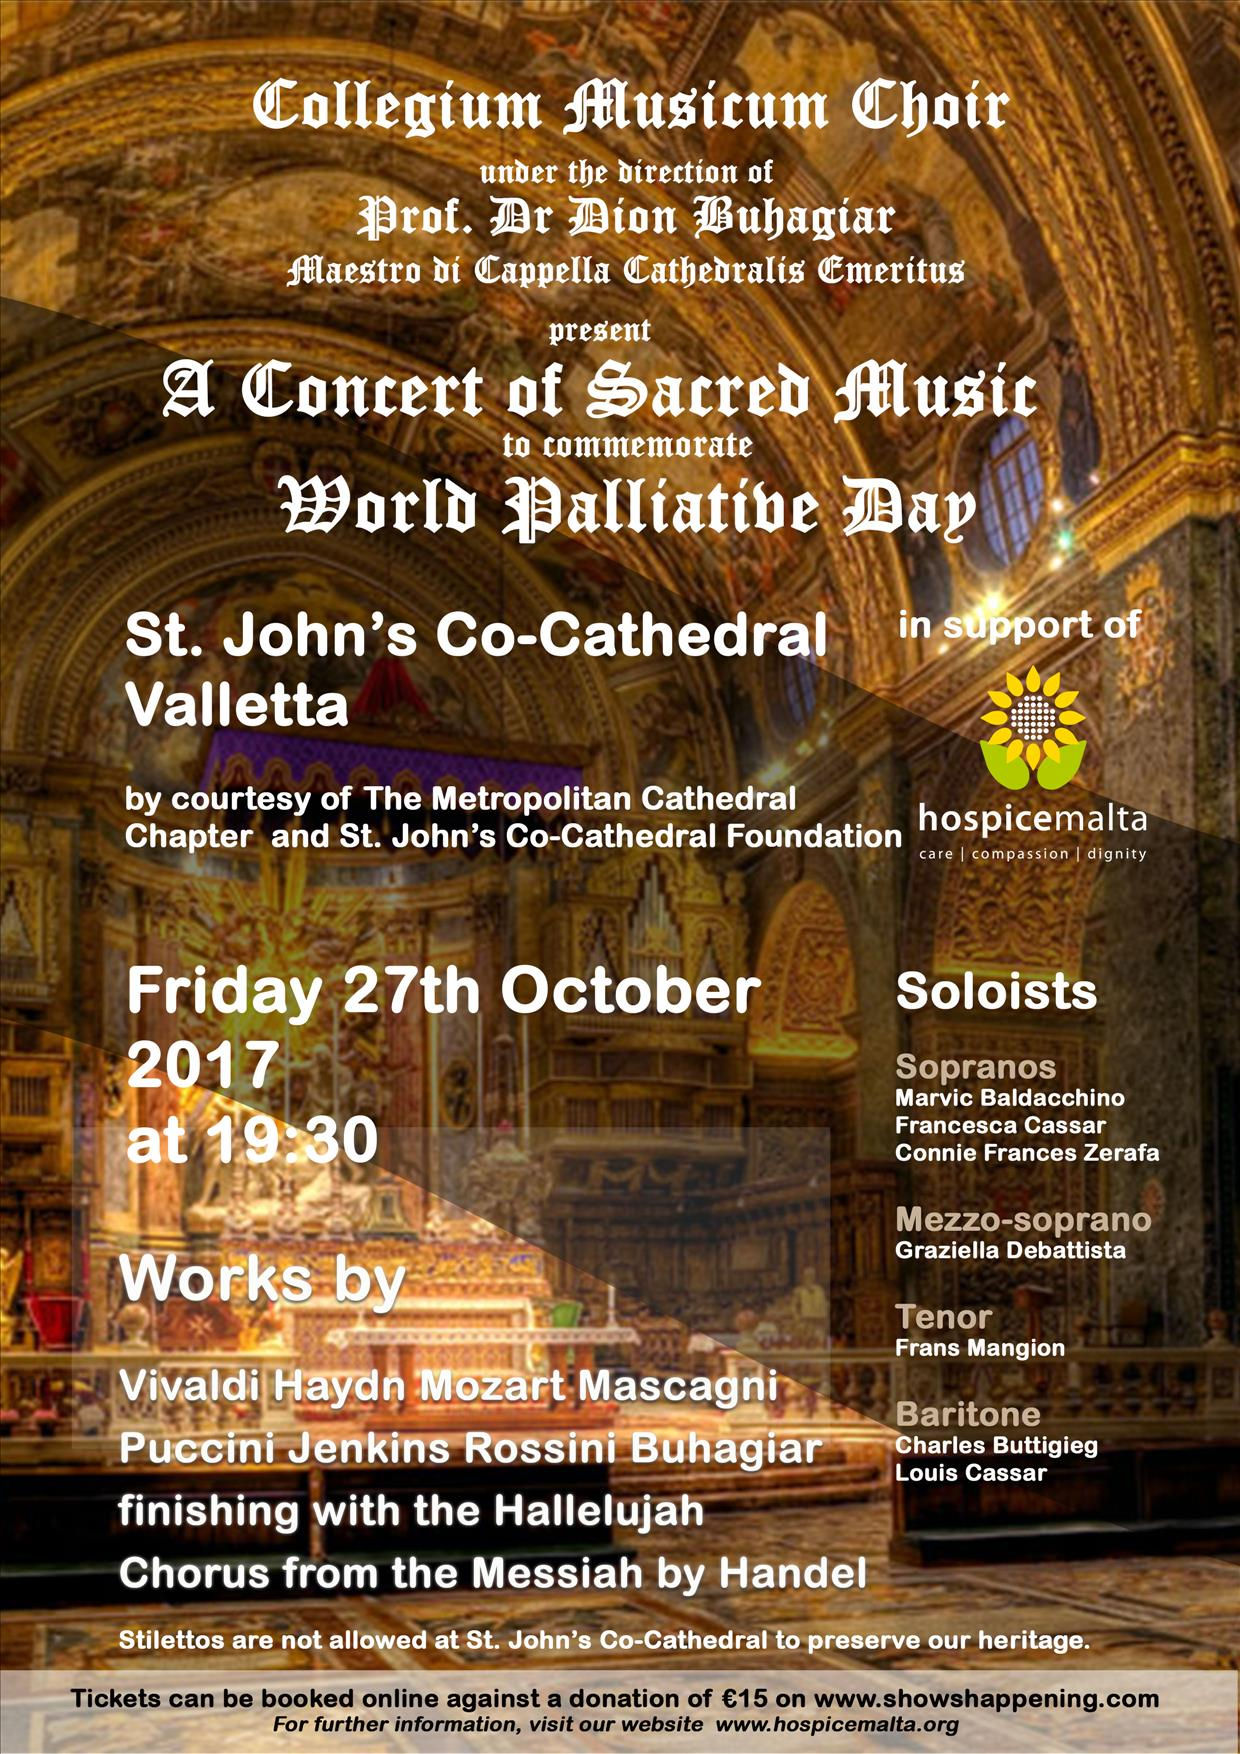 A Concert of Sacred Music flyer